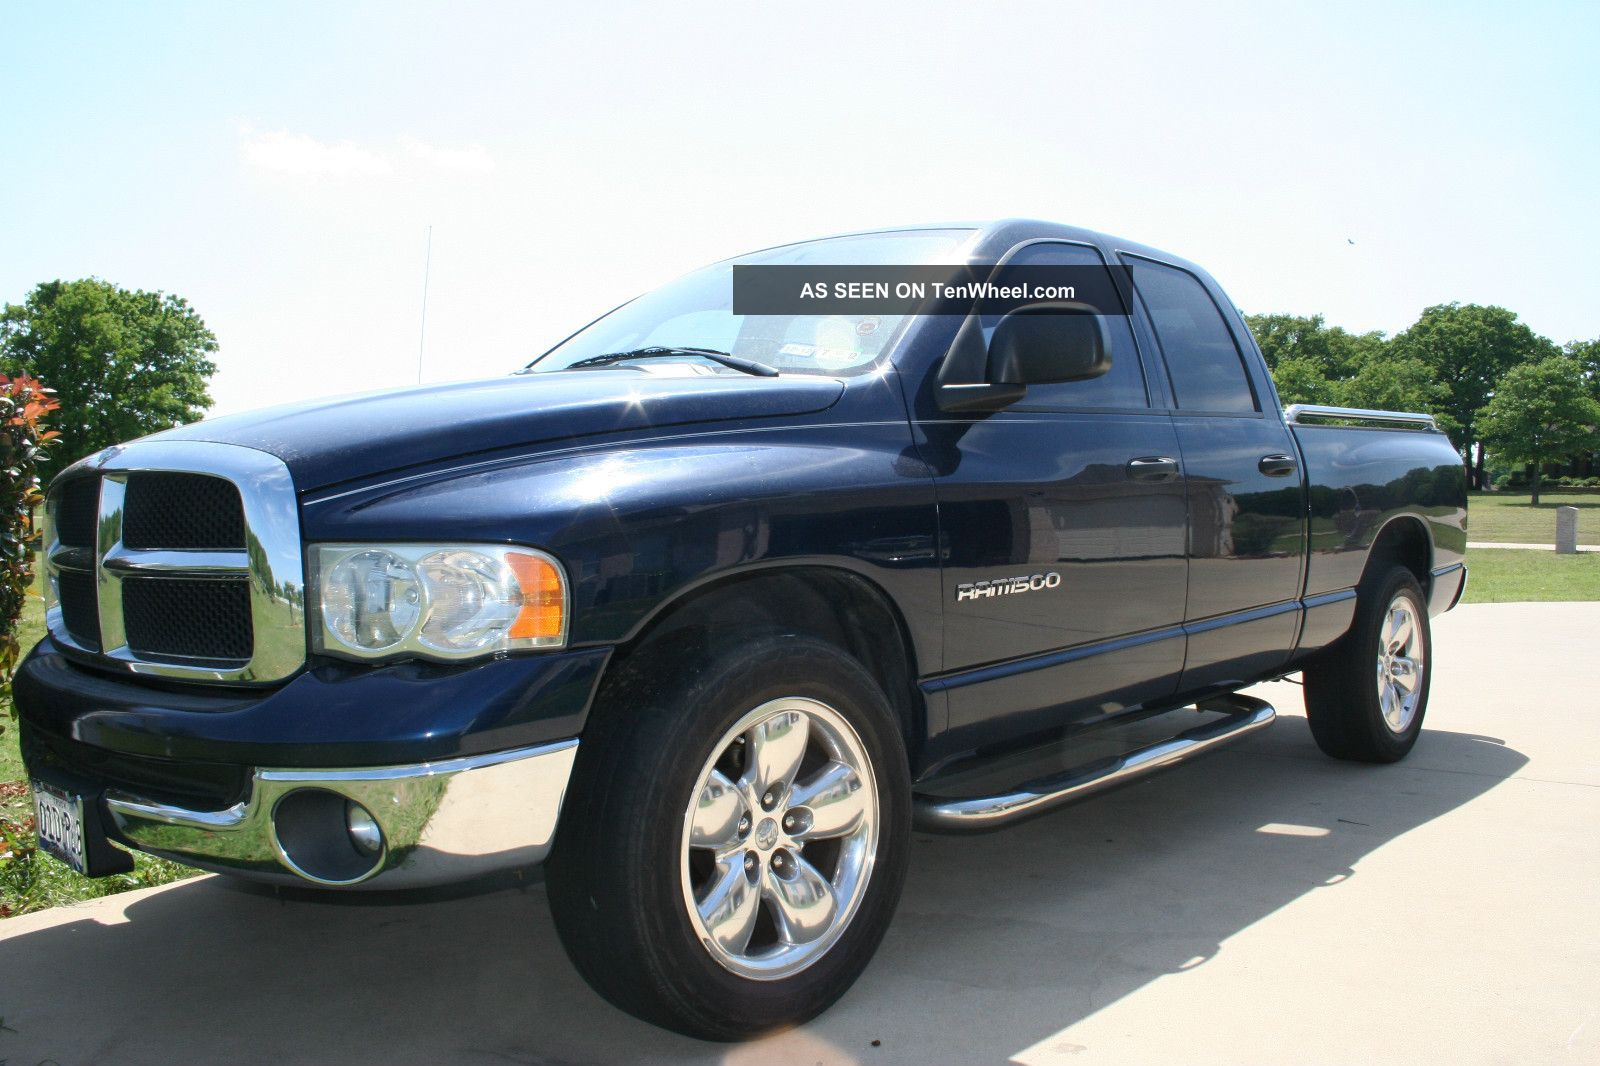 2005 dodge ram 1500 slt quad cab. Black Bedroom Furniture Sets. Home Design Ideas